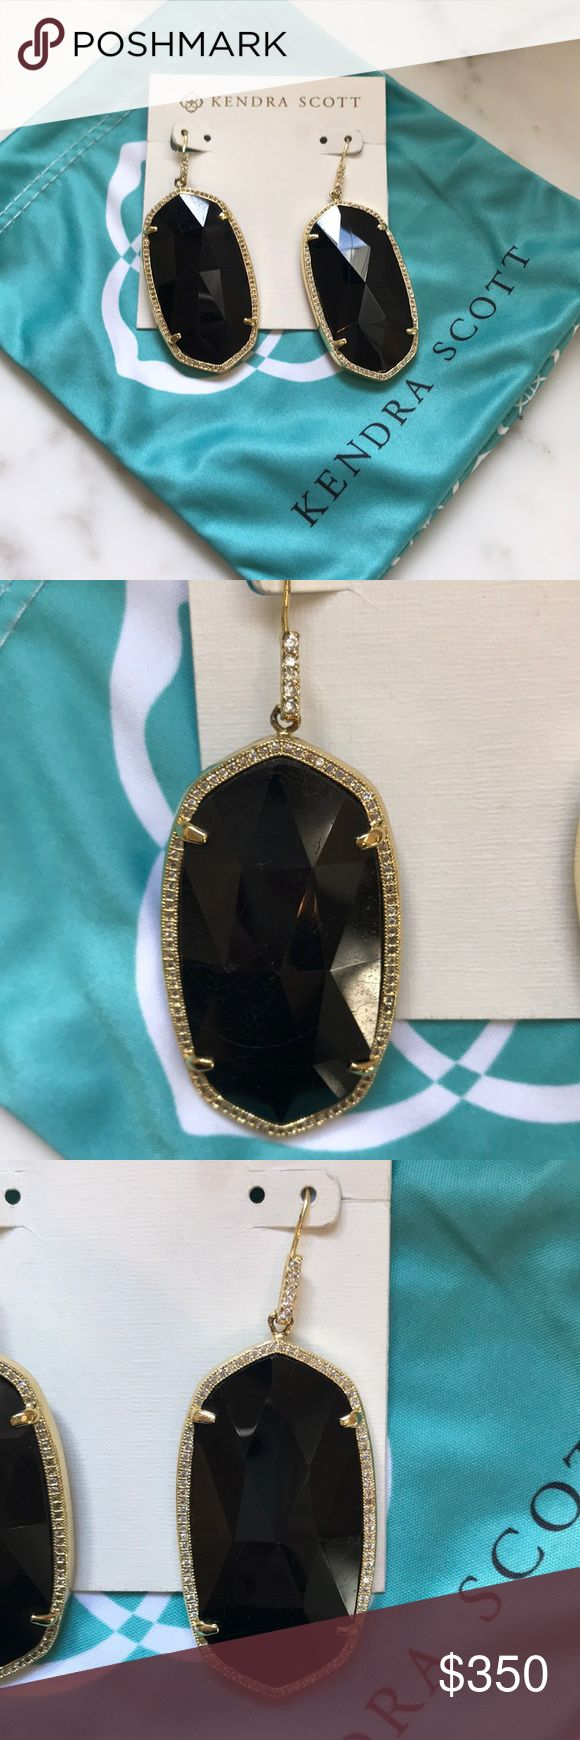 Kendra Scott Jamie Lux Tourmaline Earrings Black Tourmaline Kendra Scott Jamie Lux earrings in perfect condition. These are too heavy for my ears and have only been tried on. Listing for the last price paid for the same earrings but open to fair offers. No trades. Subtle irregularities in the stones are natural. They have a black shine and none of the pave diamonds are missing. Kendra Scott Jewelry Earrings